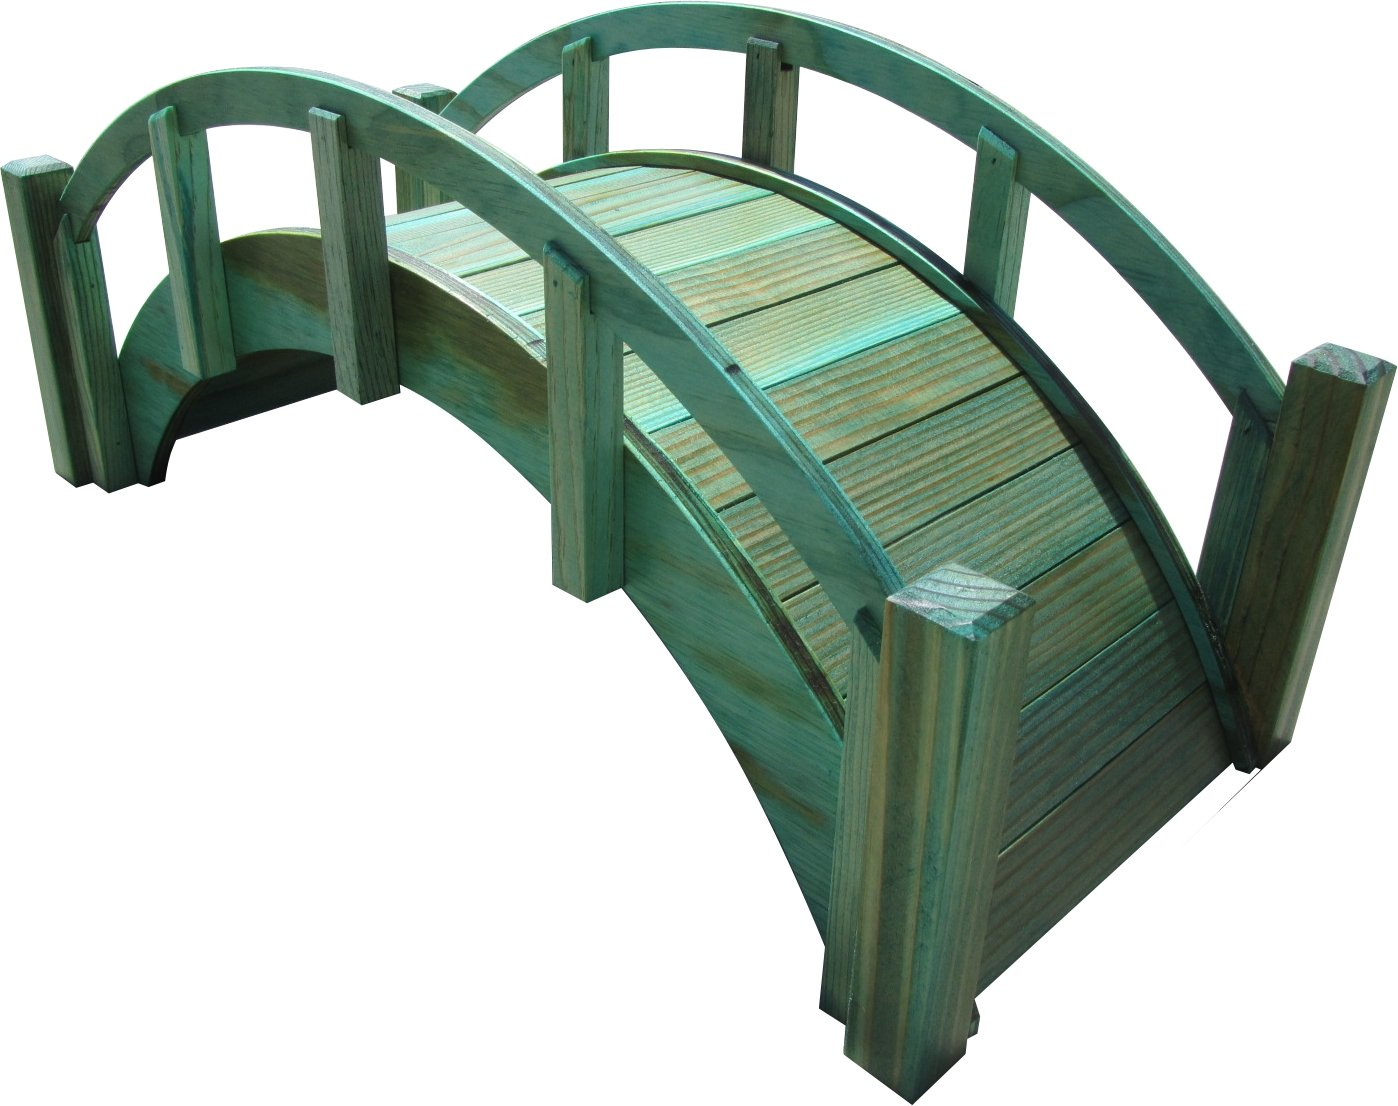 SamsGazebos Miniature Japanese Treated Wood Garden Bridge, 25-Inch, Green